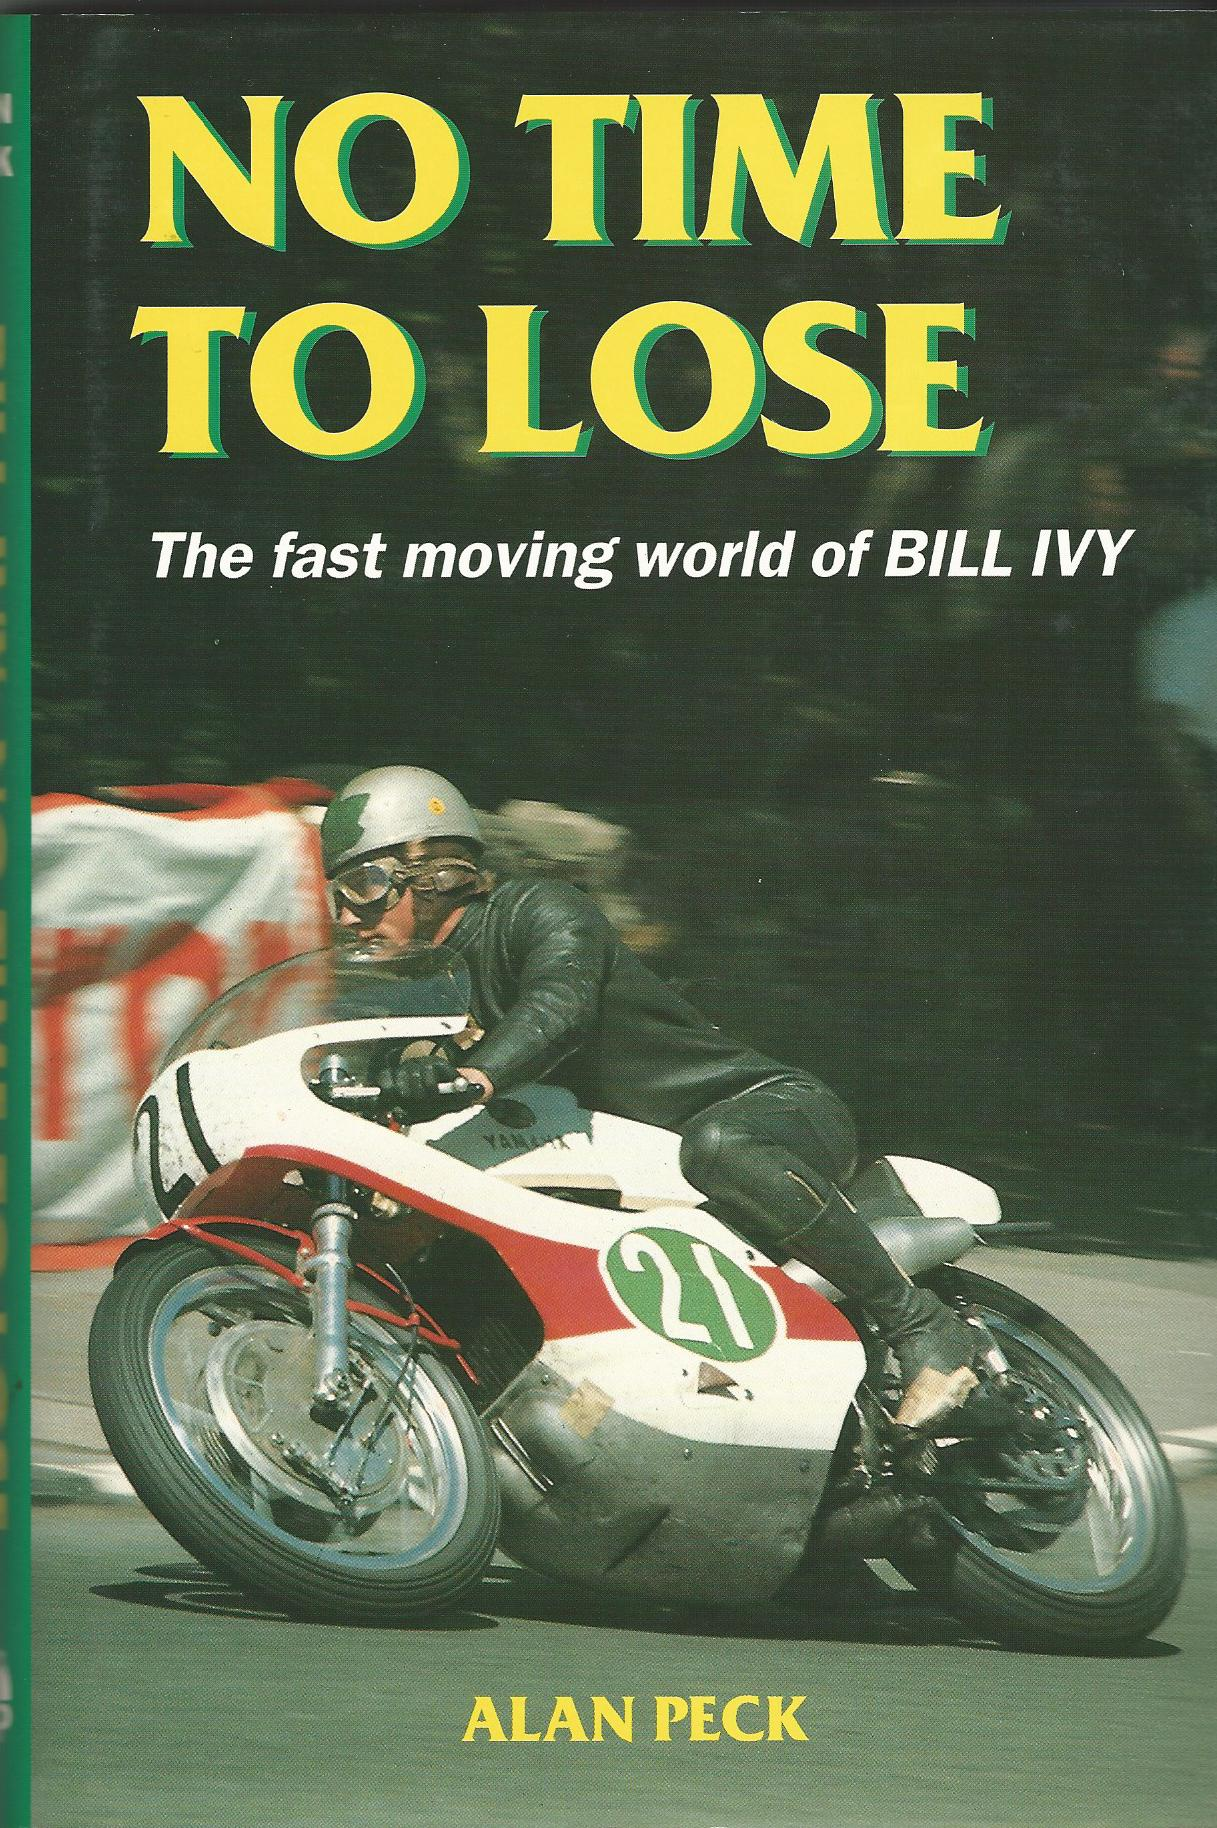 Image for No Time To Lose: The Fast Moving World of Bill Ivy.